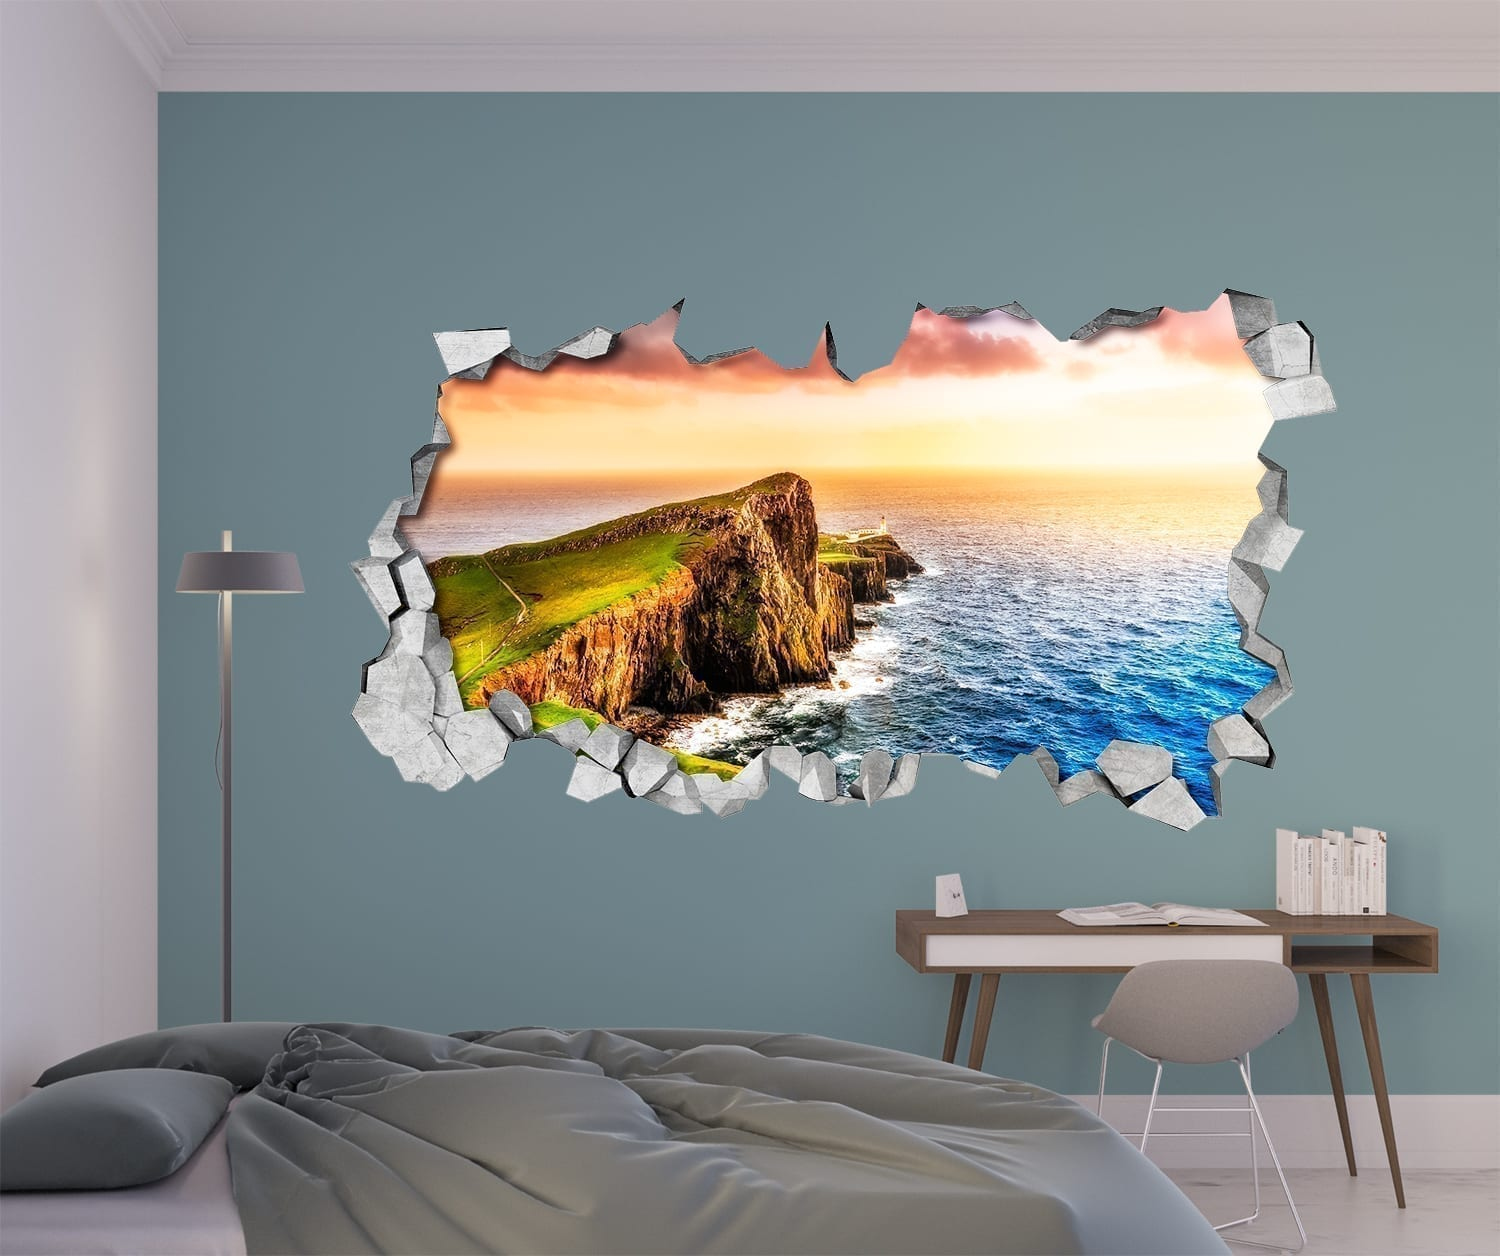 sea reliefs wall decor. Black Bedroom Furniture Sets. Home Design Ideas